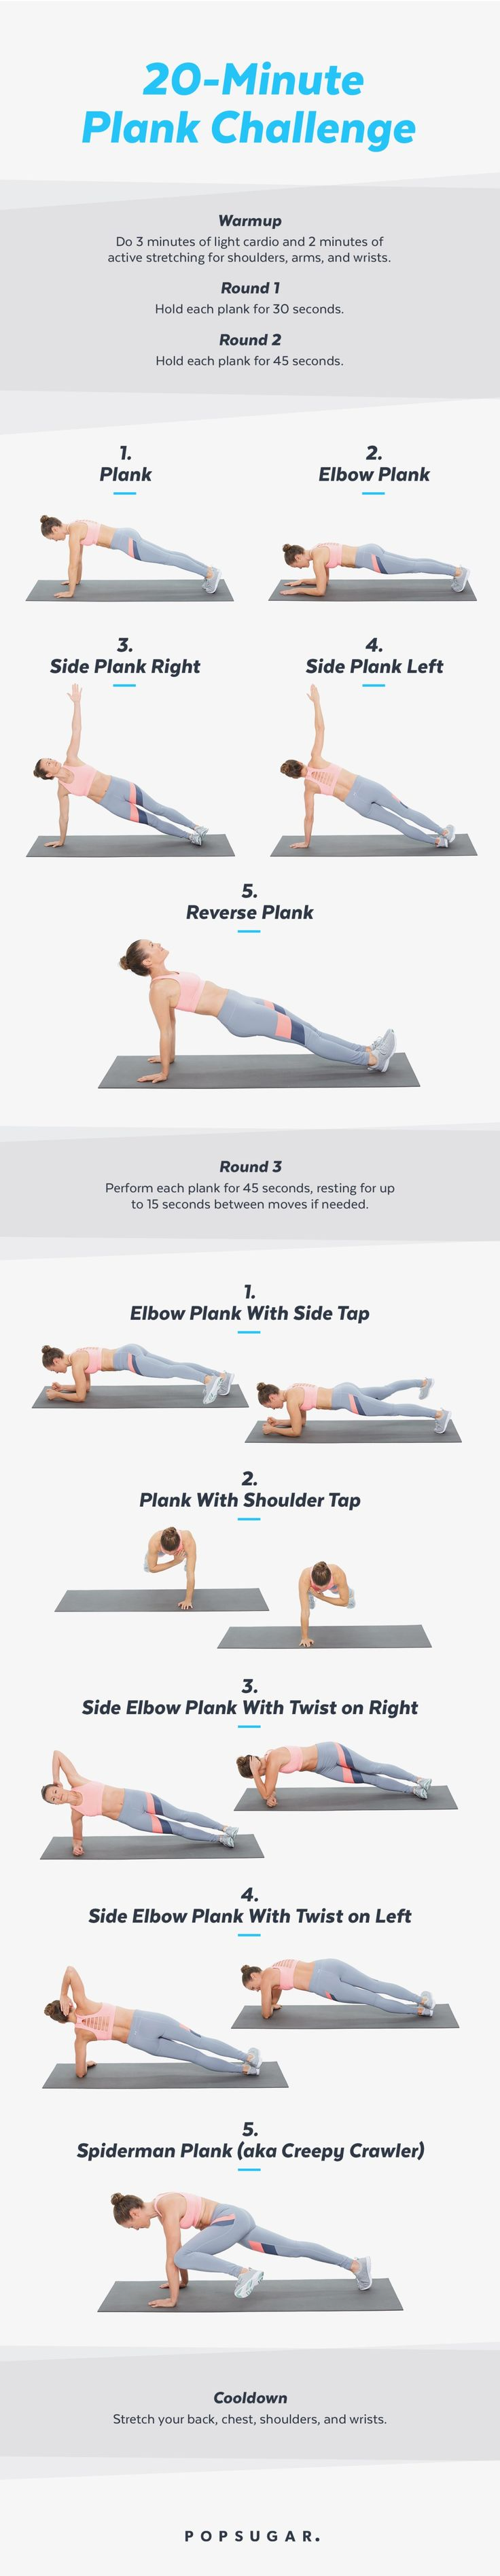 Try this 20-minute plank challenge workout for flat abs and sexy shoulders. There are modifications for beginners too.